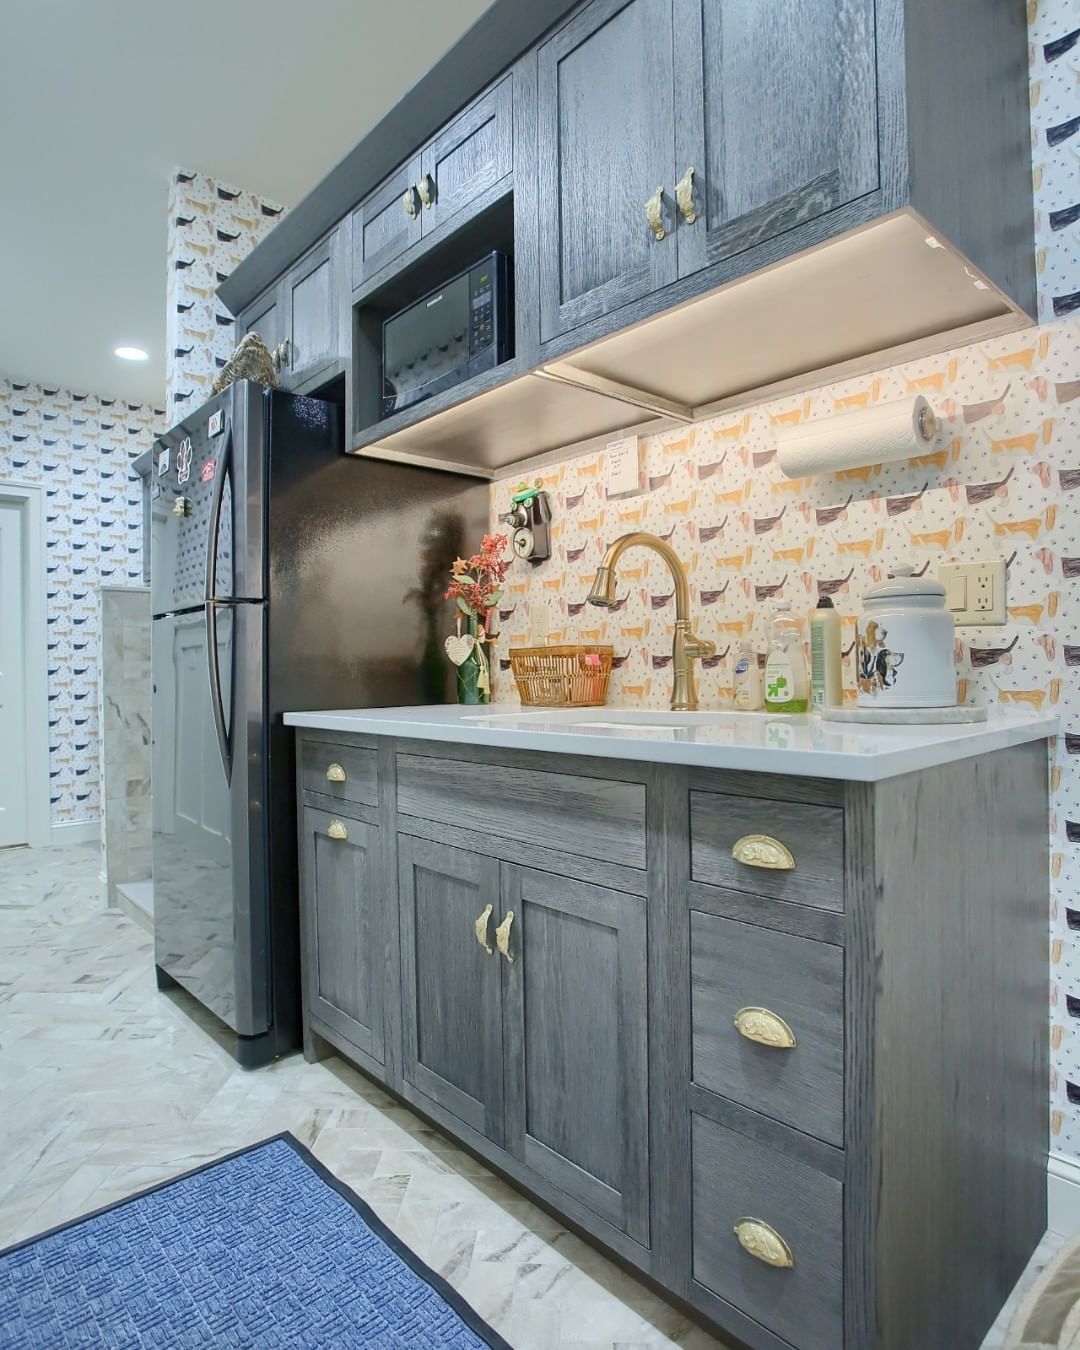 Adding A Mini Kitchen In Your Laundry Room The Perks Of Custom Cabinets Design In 2020 Mini Kitchen Custom Cabinets Cabinet Design